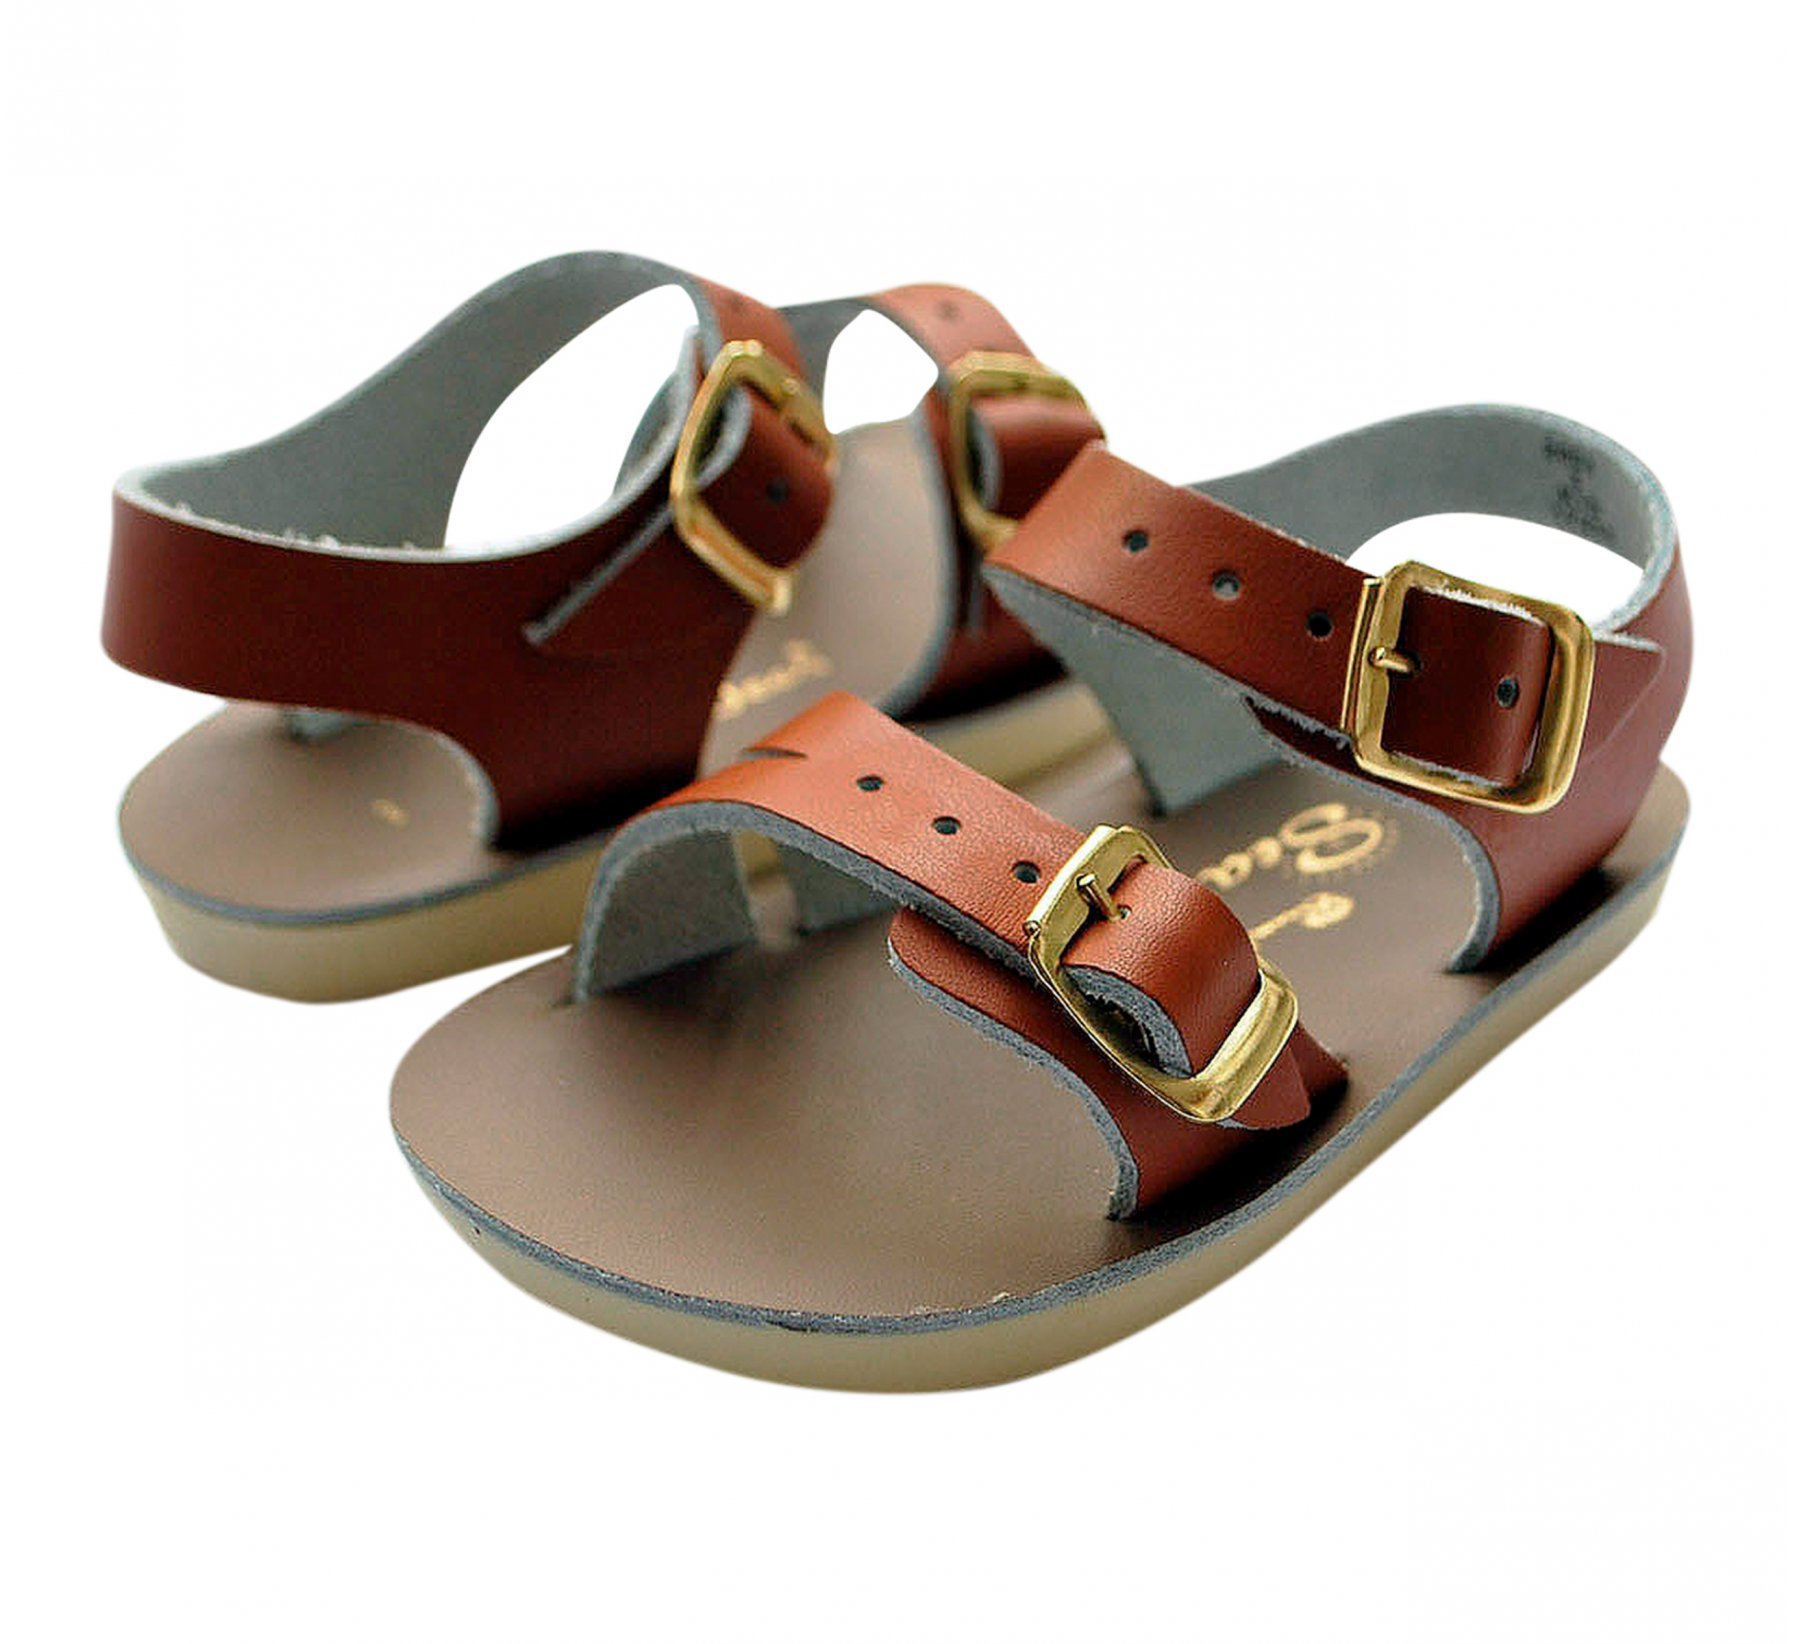 Seawee Brun Roux - Salt Water Sandals